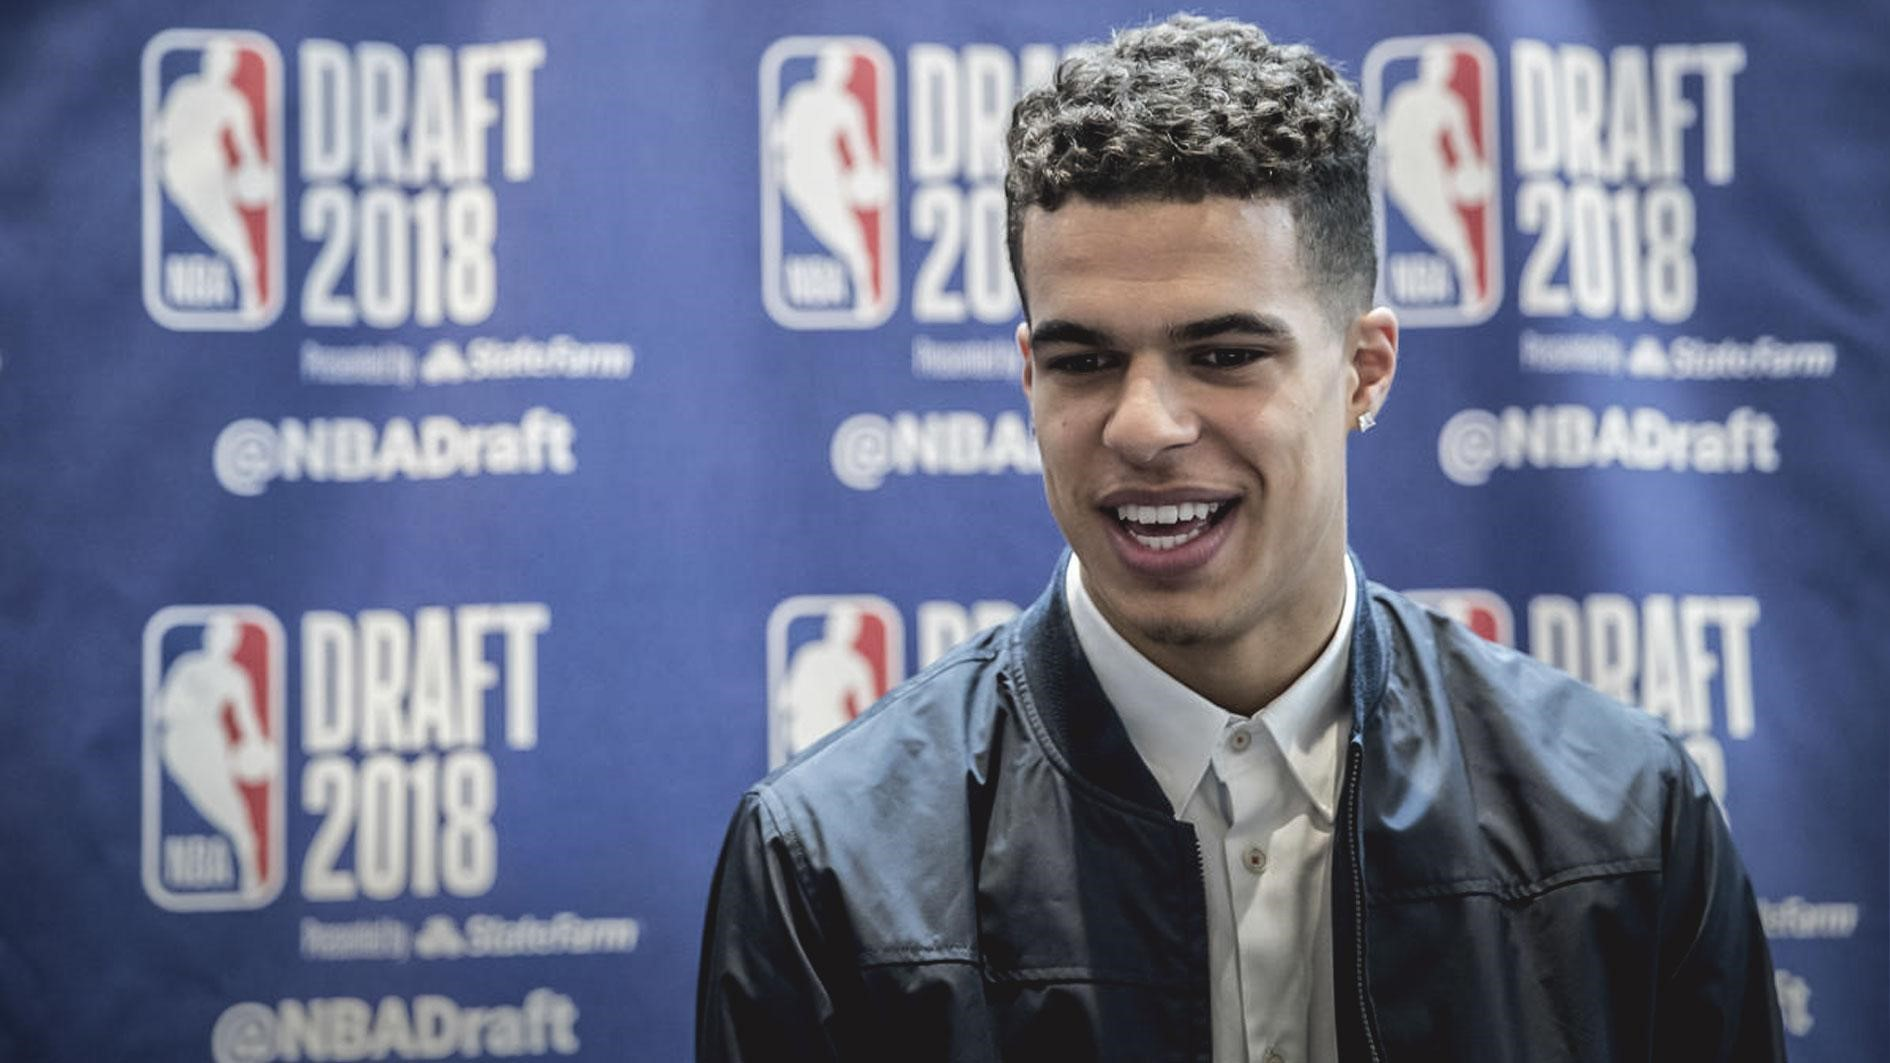 ls Michael Porter Jr. About To Prove His Critics Wrong?